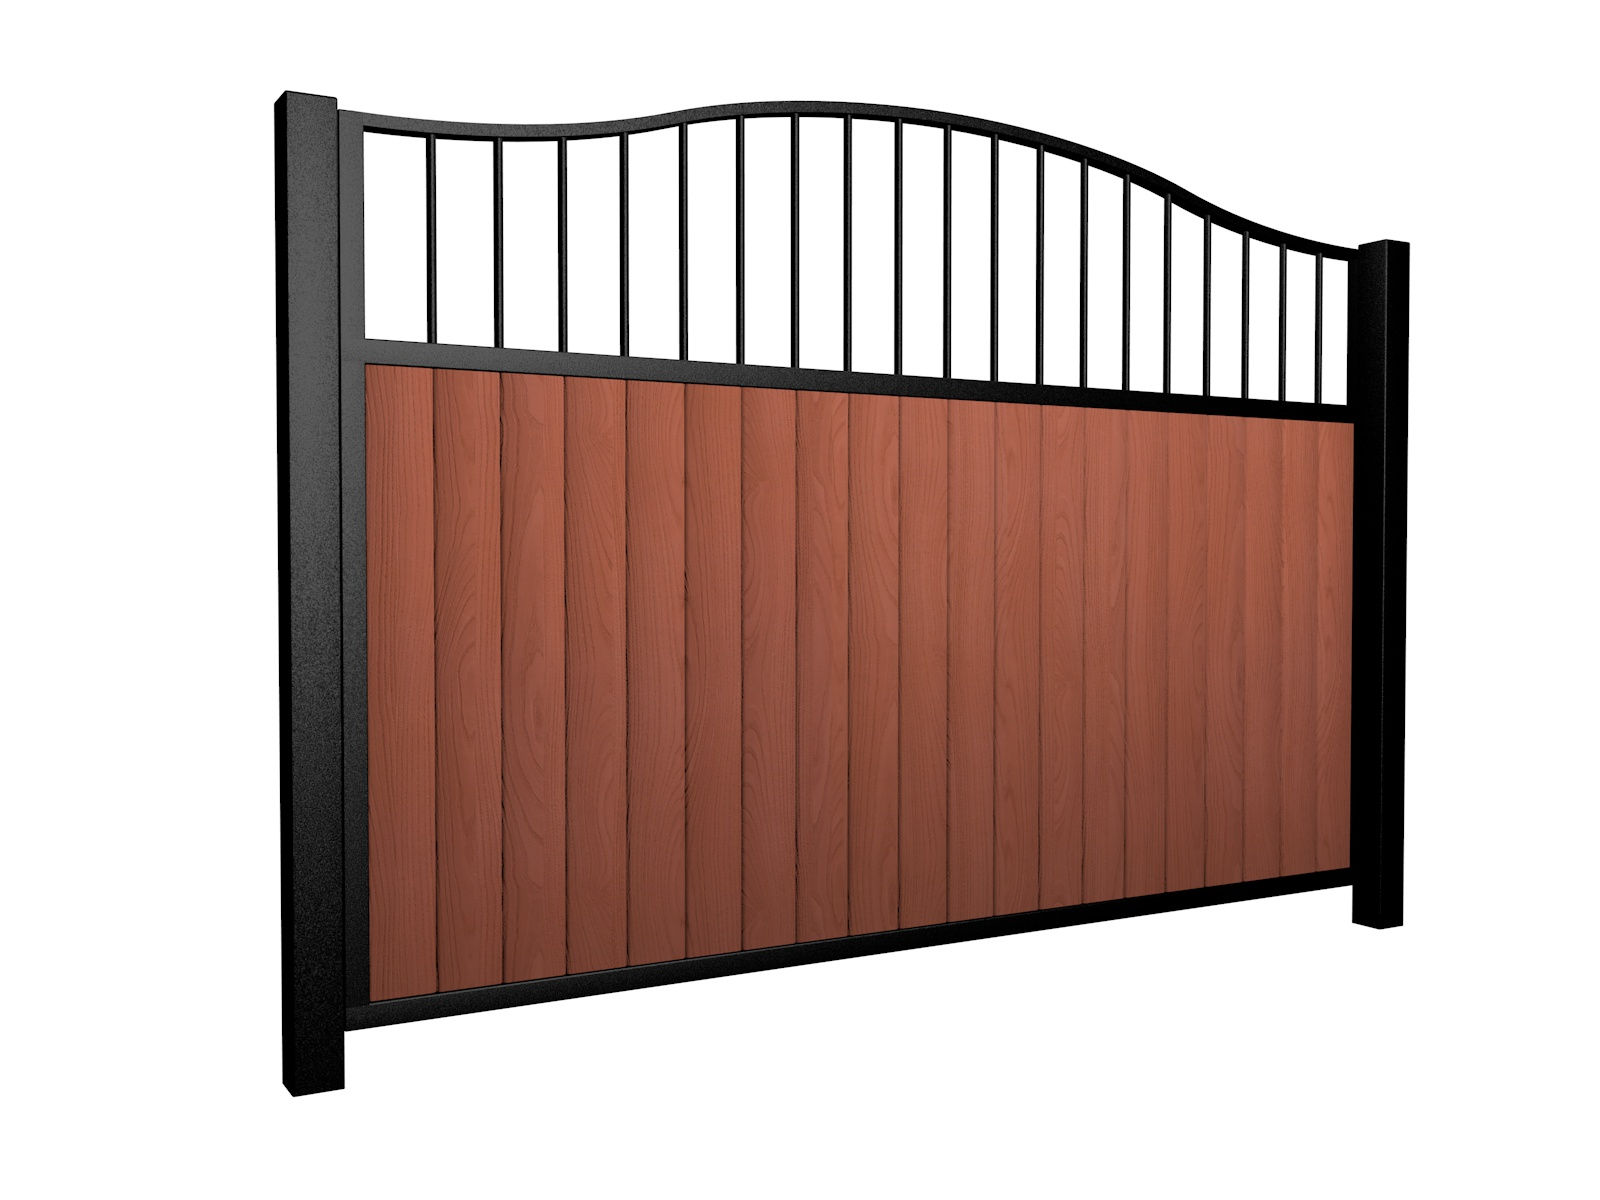 Sliding wood fill metal framed open bell top gate